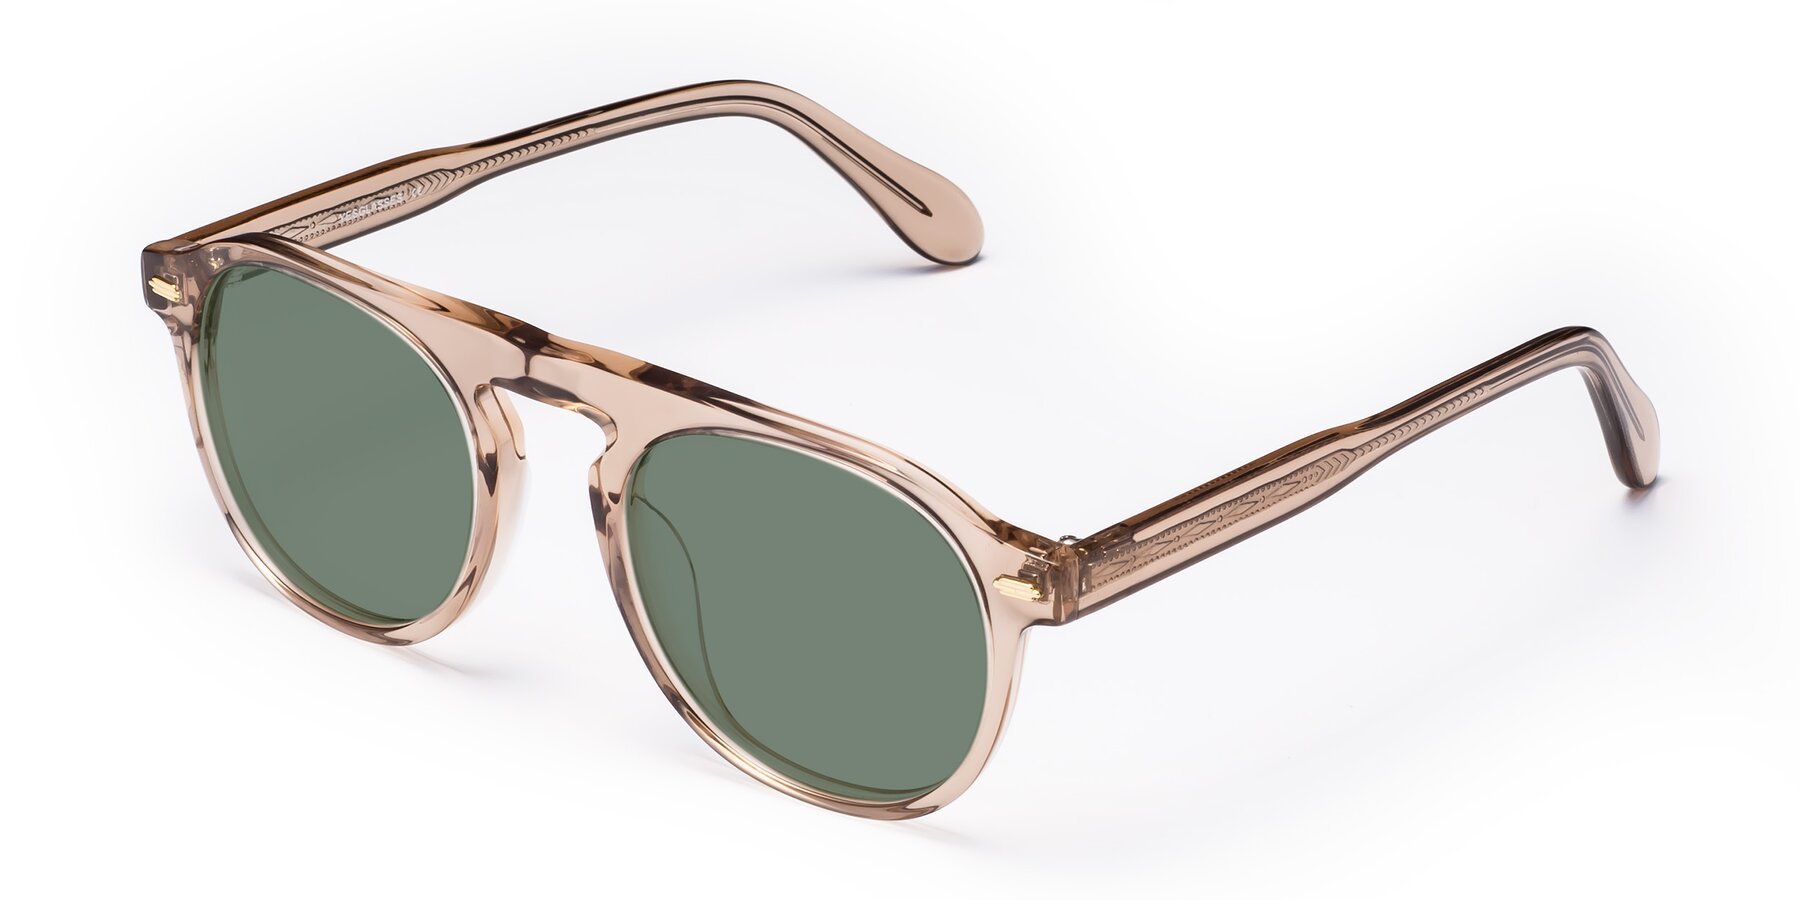 Angle of Mufasa in light Brown with Medium Green Tinted Lenses